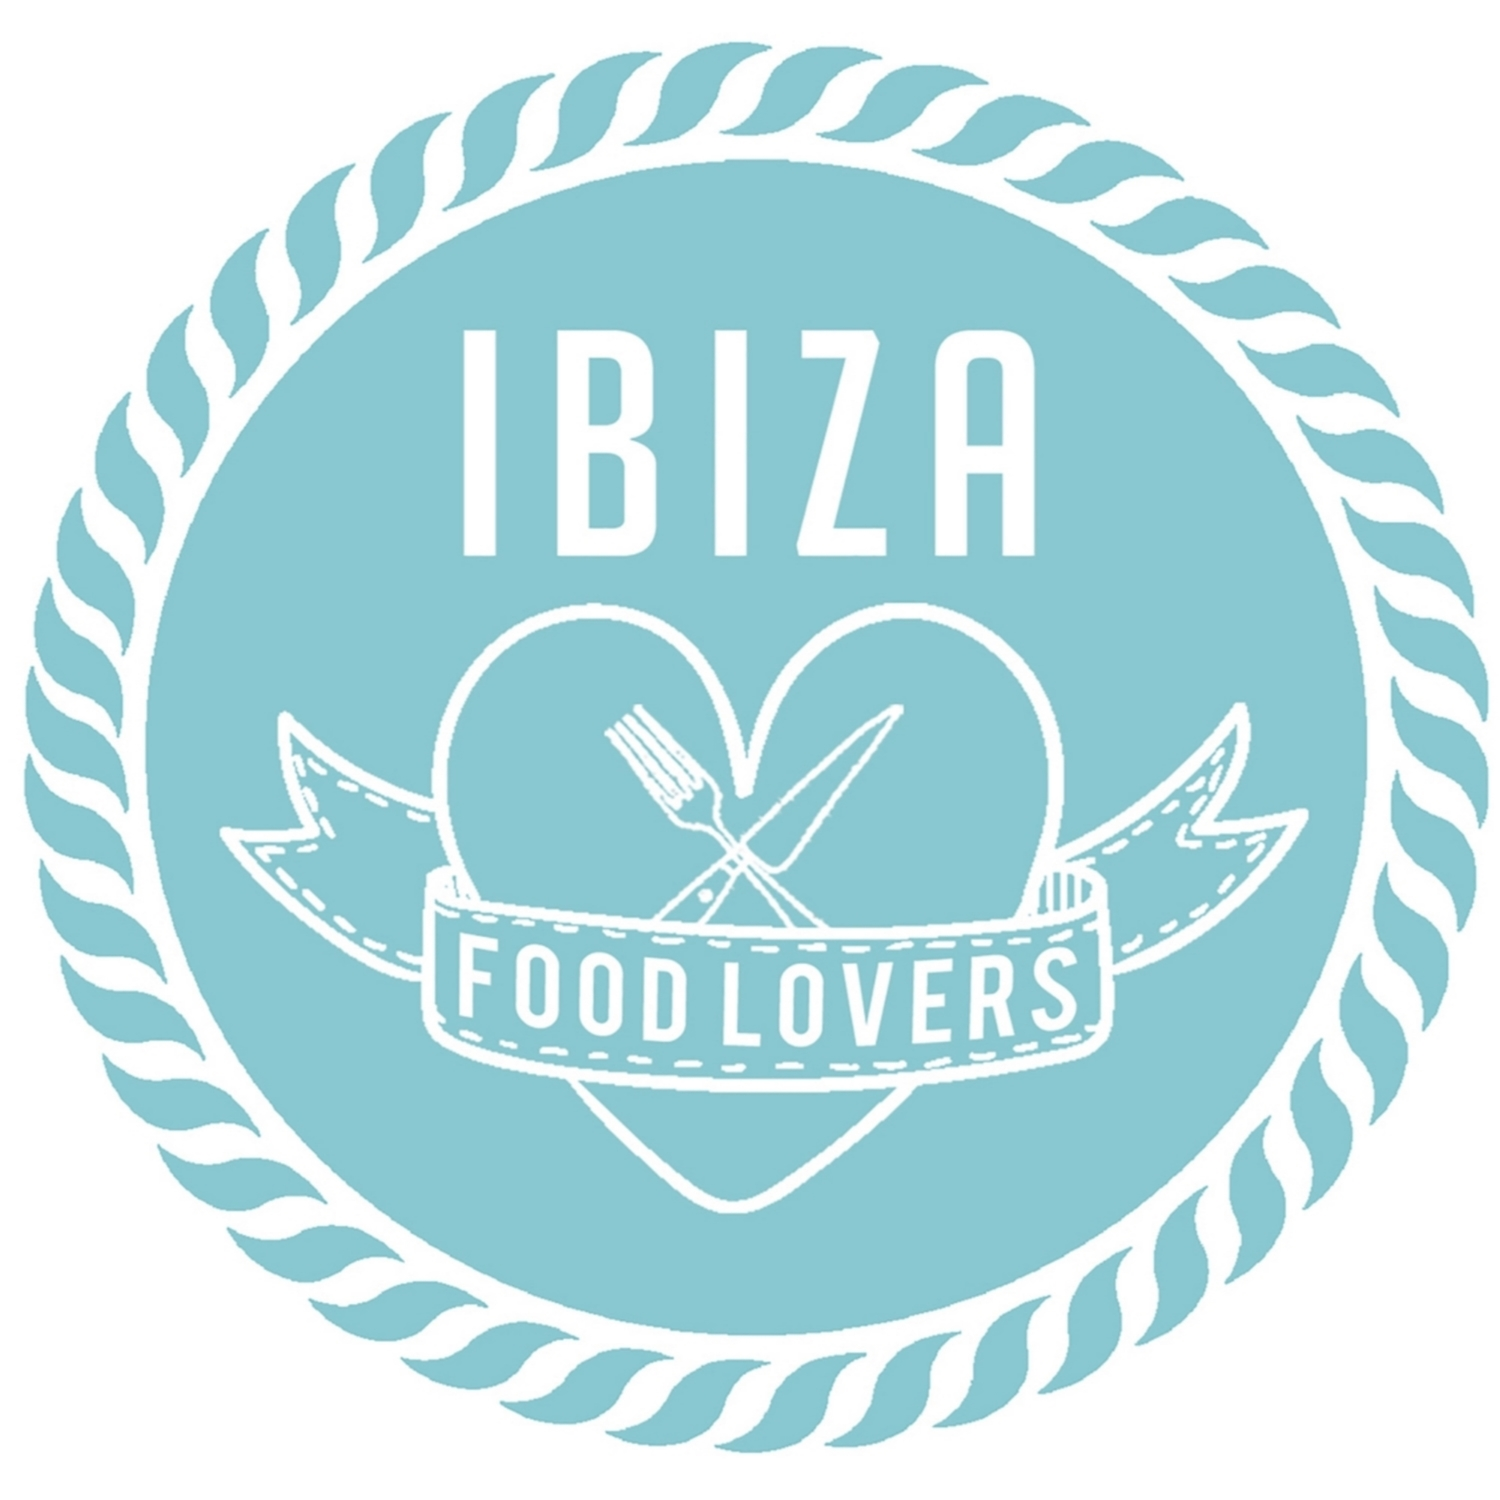 Ibiza Food Lovers